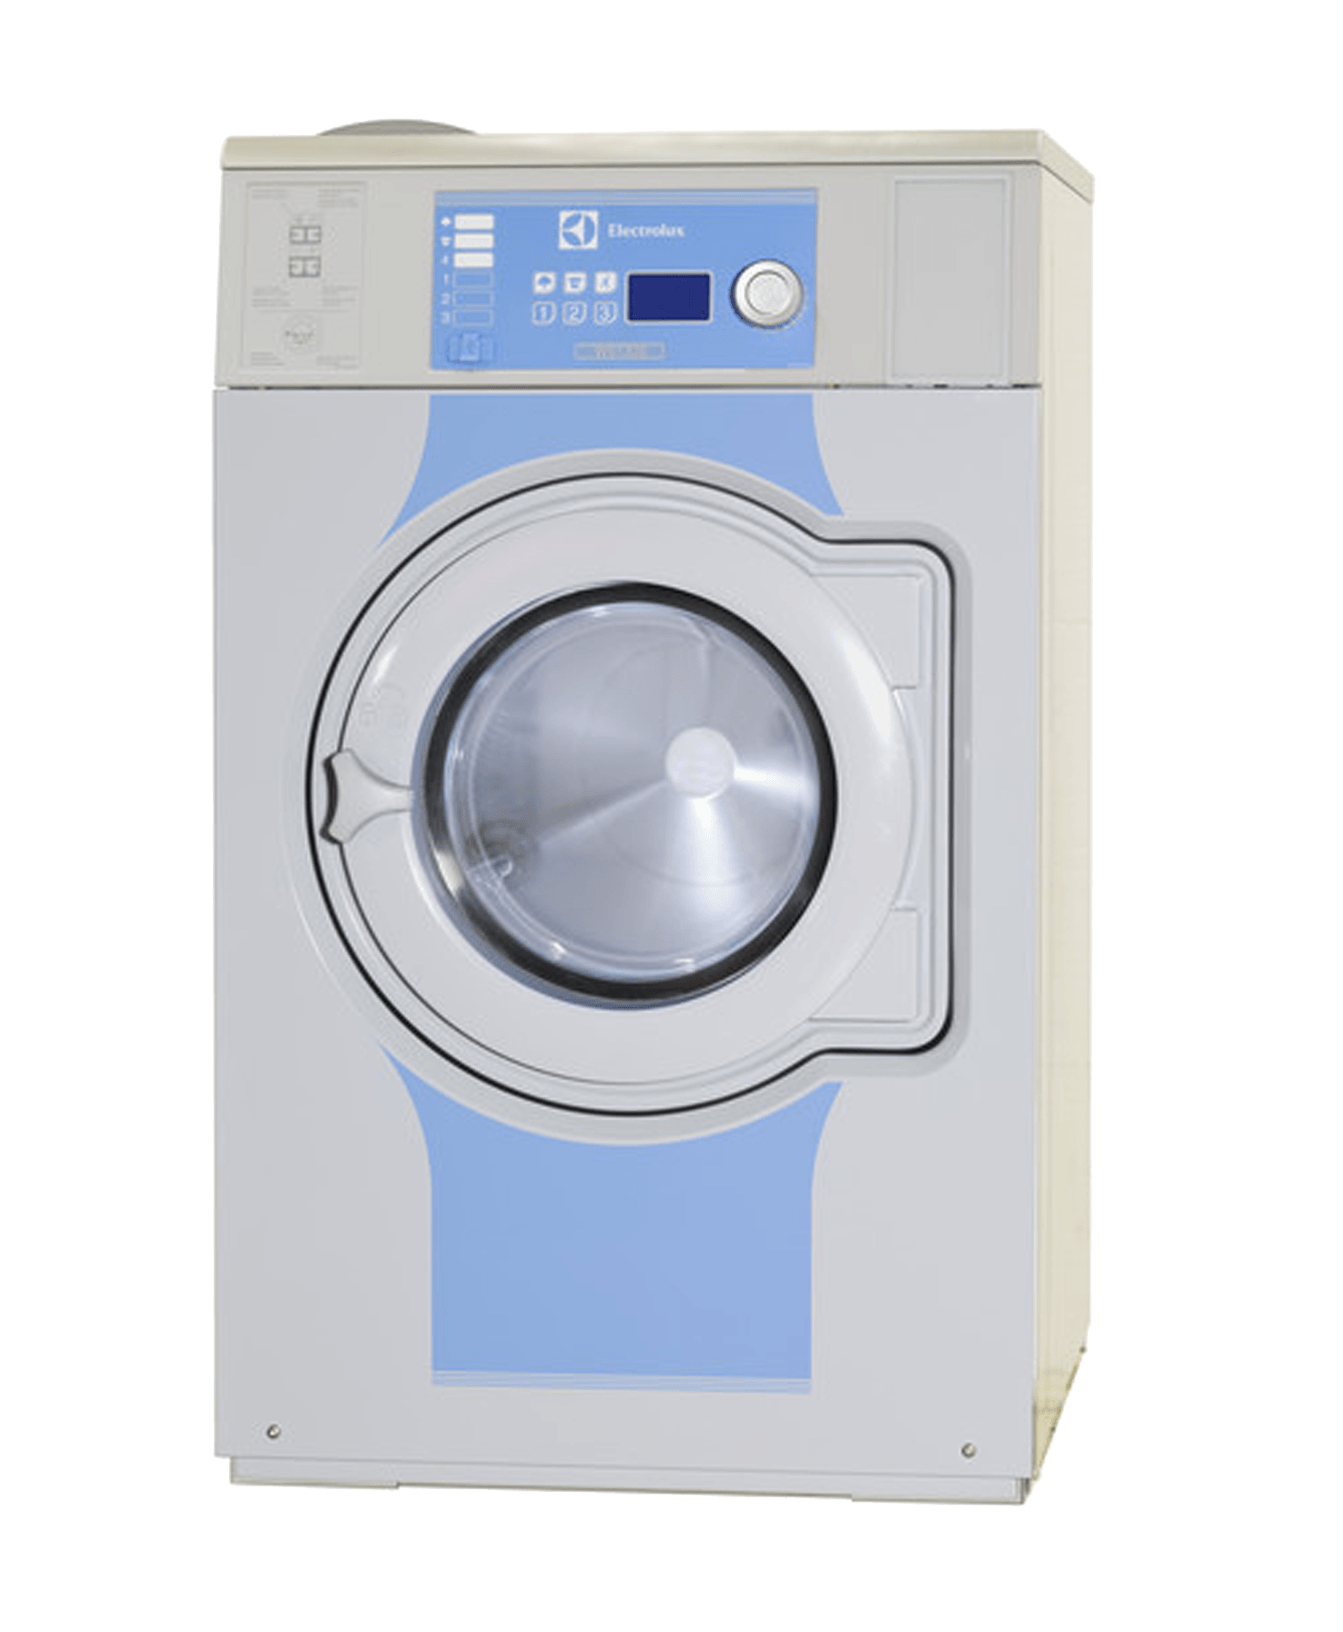 Electrolux W5105h 11kg The Opl Group